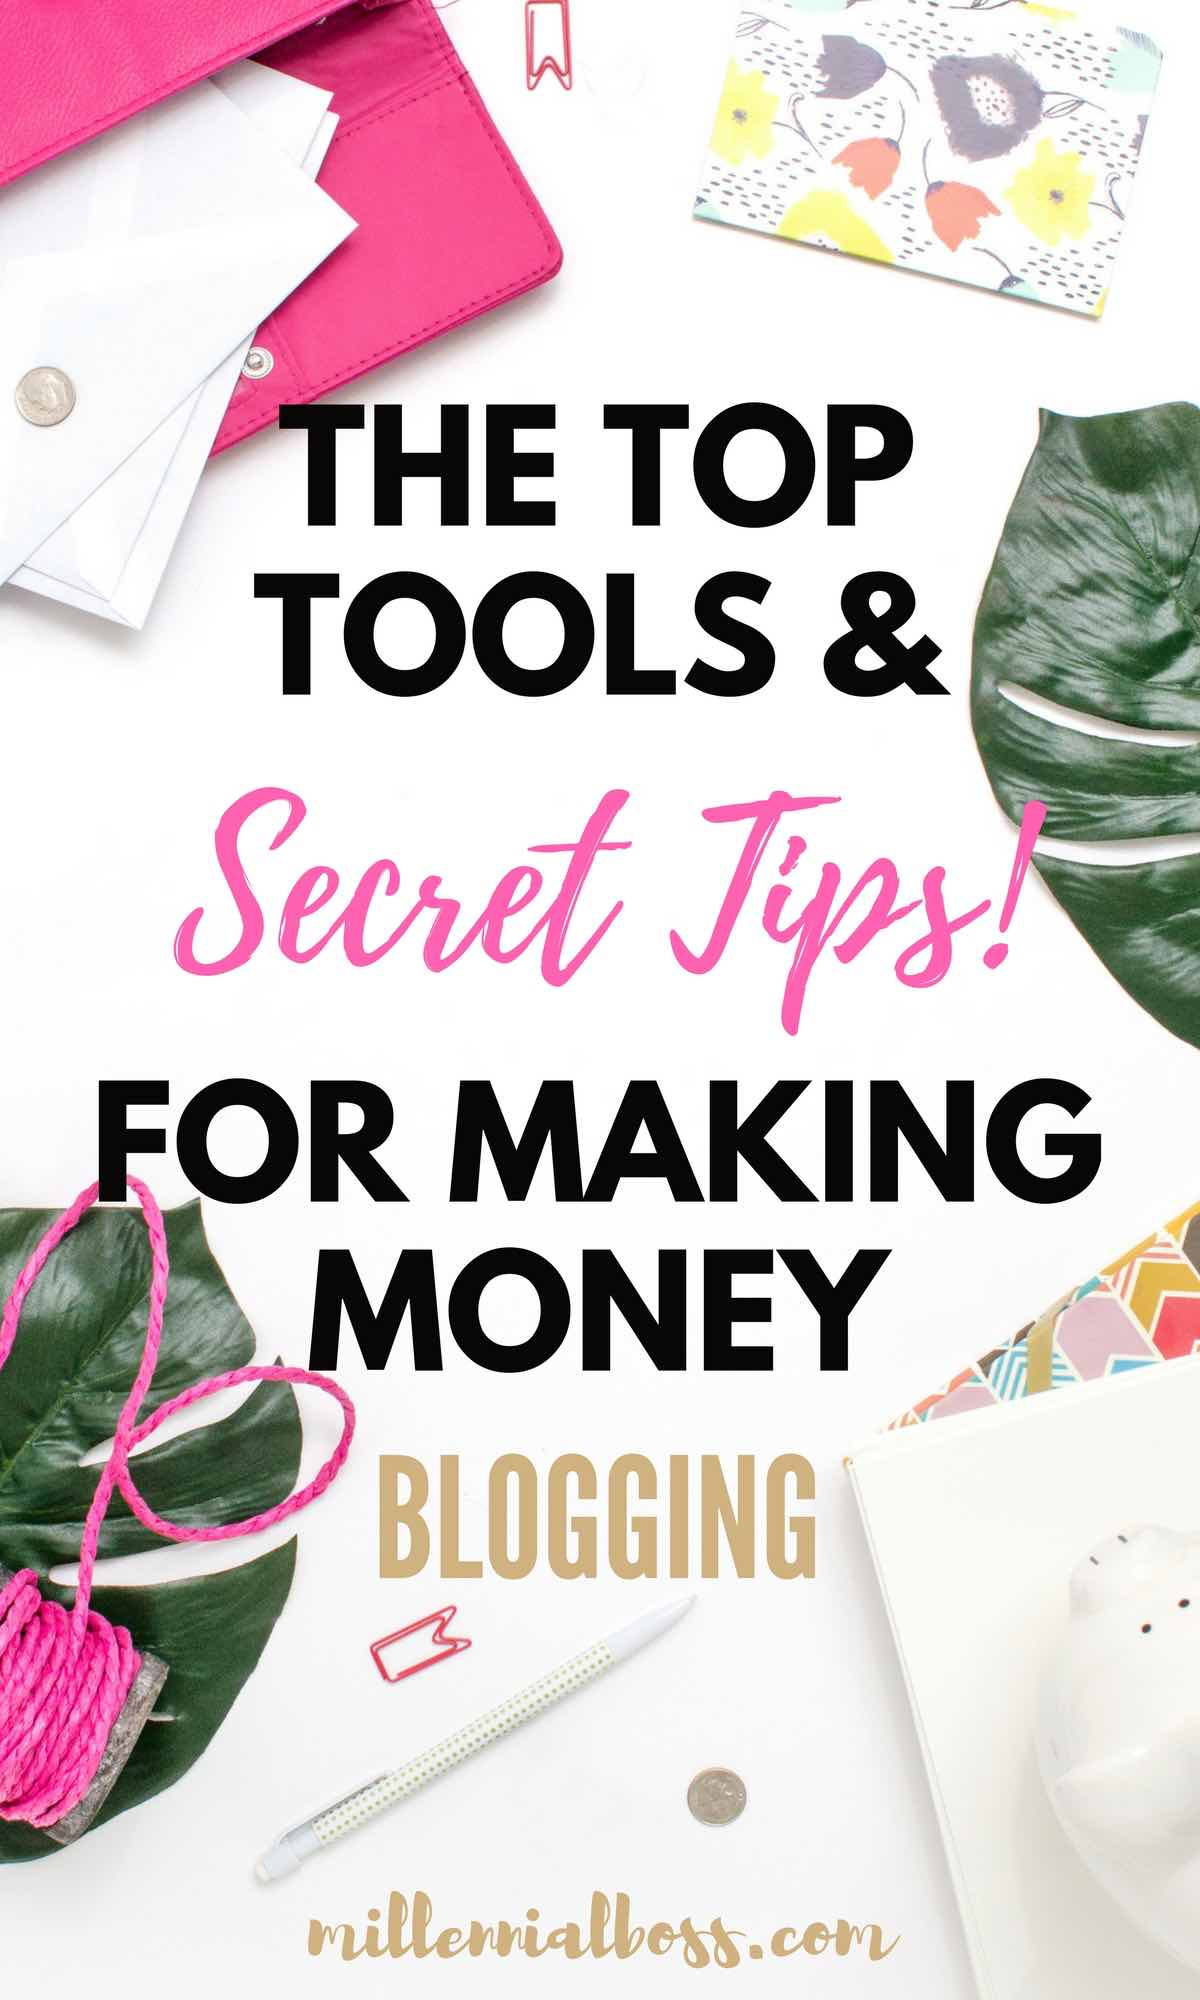 Blogging tools and secret tips to make money blogging